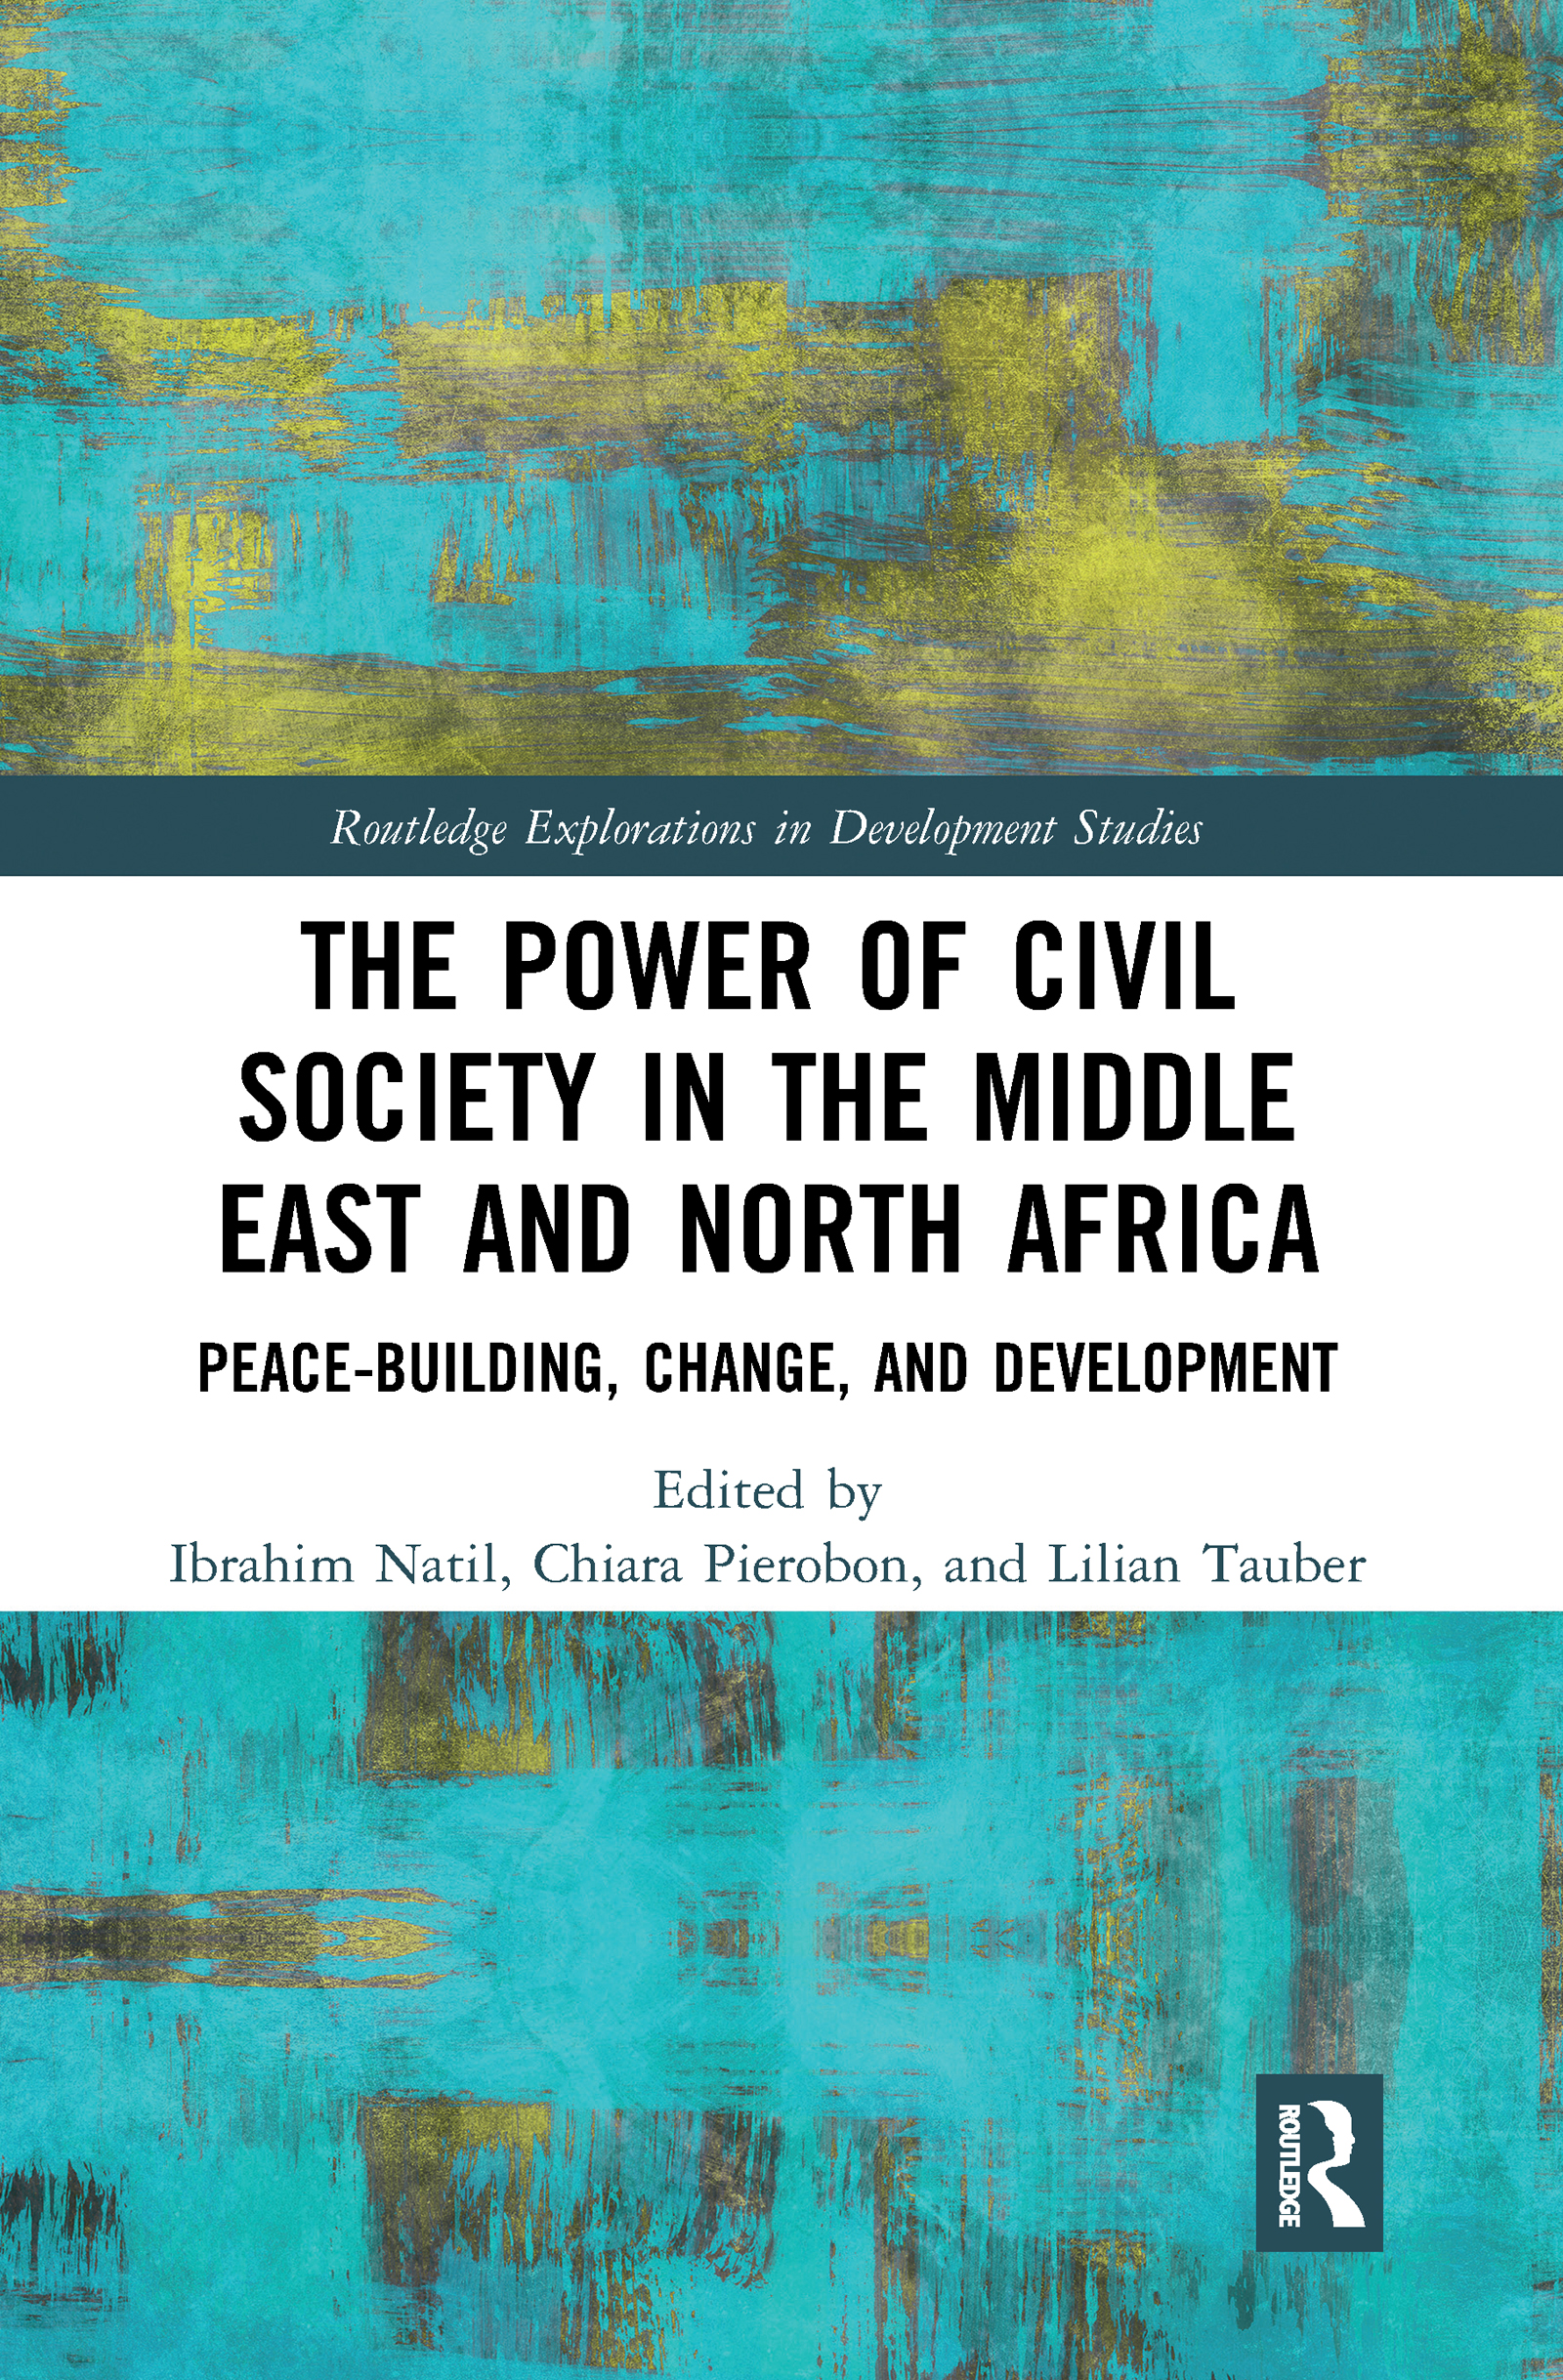 The Power of Civil Society in the Middle East and North Africa